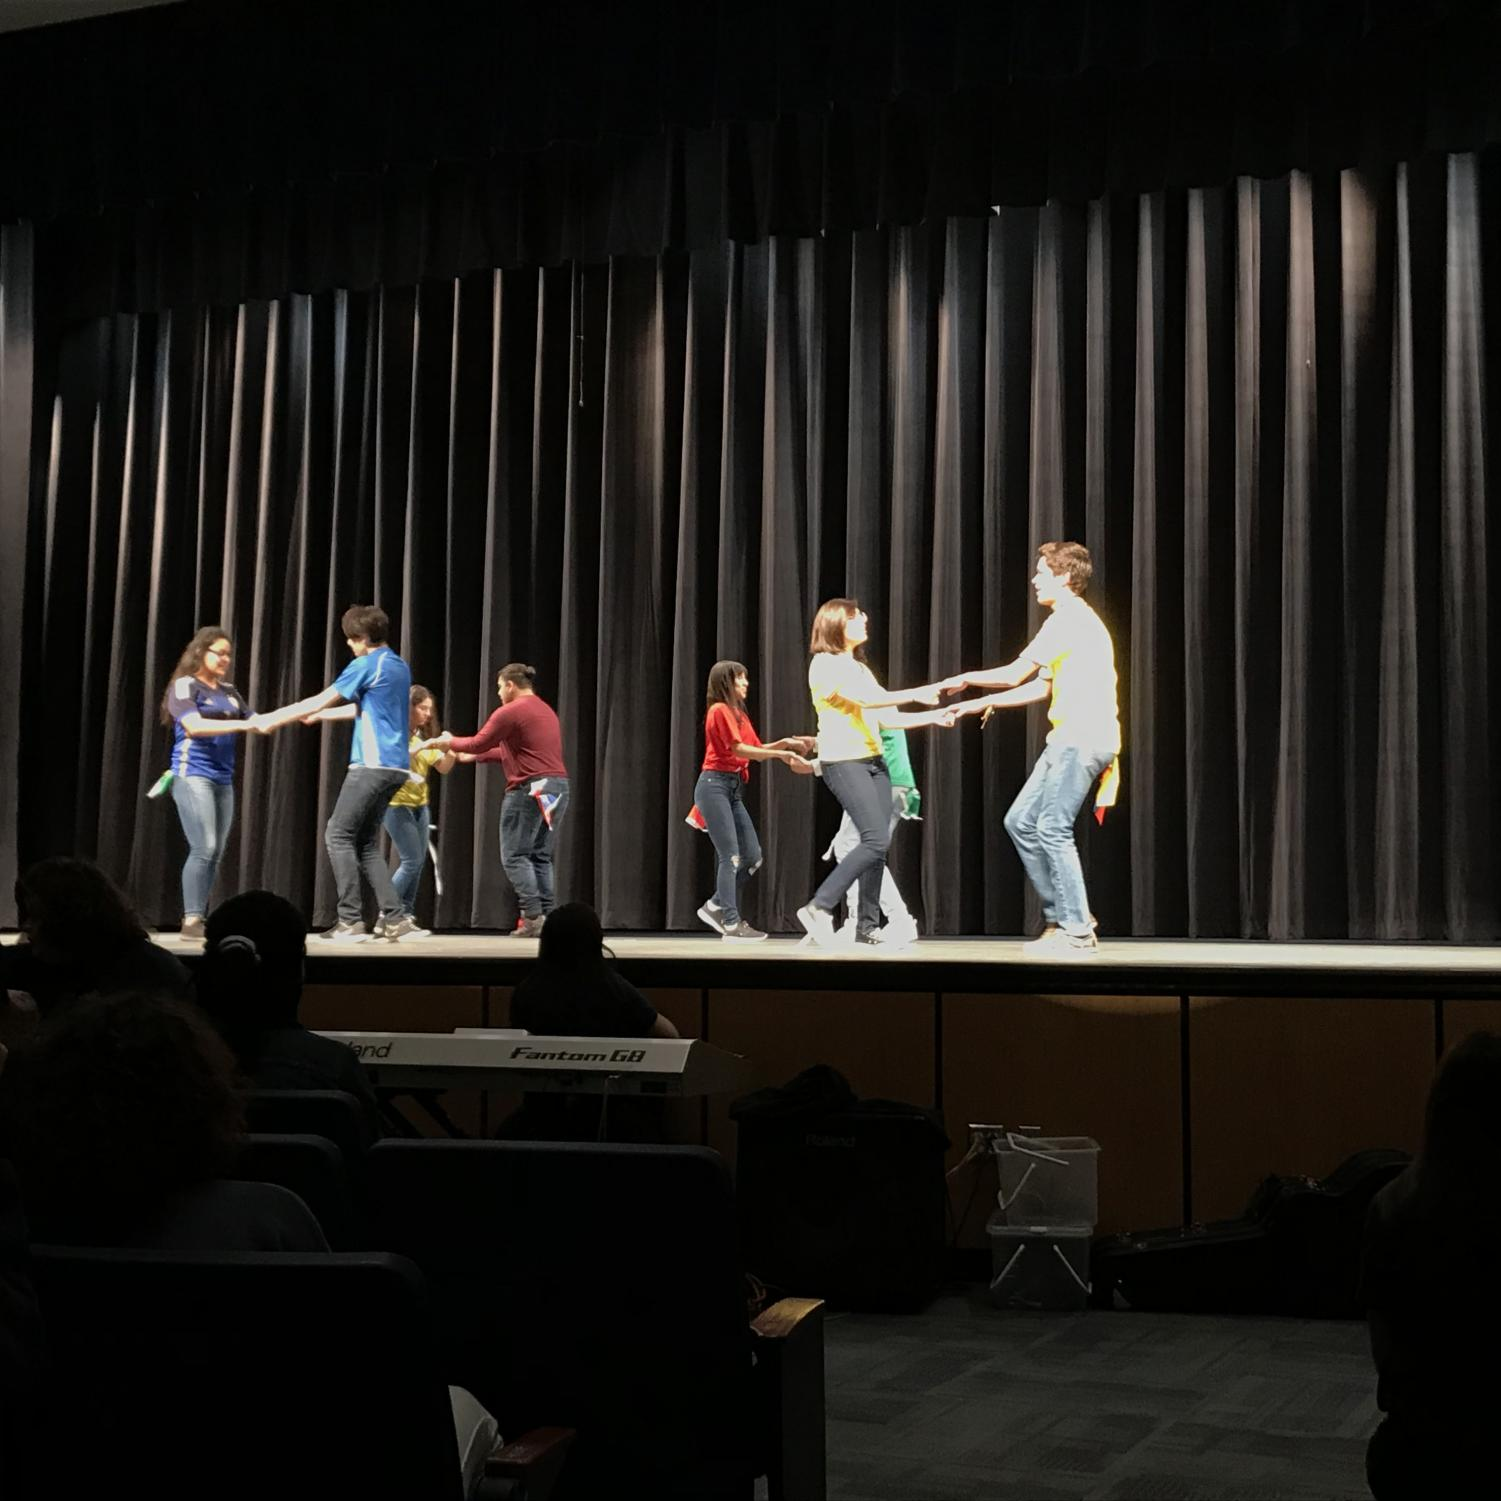 The Hispanic Heritage Club performed a cultural dance at the spring pep rally on April 6th.